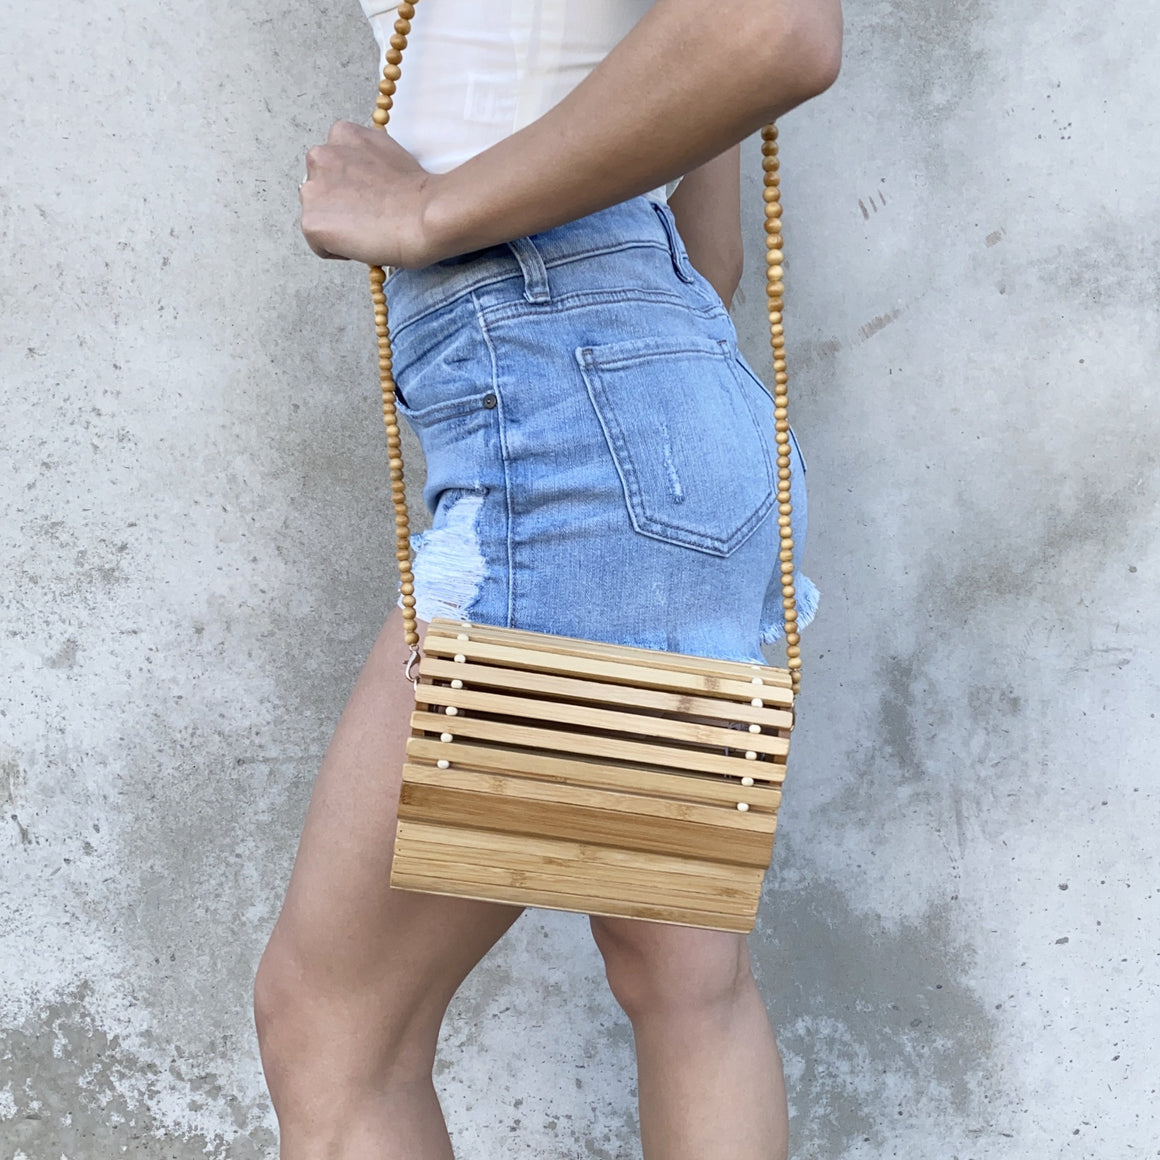 Vera Carved Bamboo Wood Handbag - Dainty Hooligan